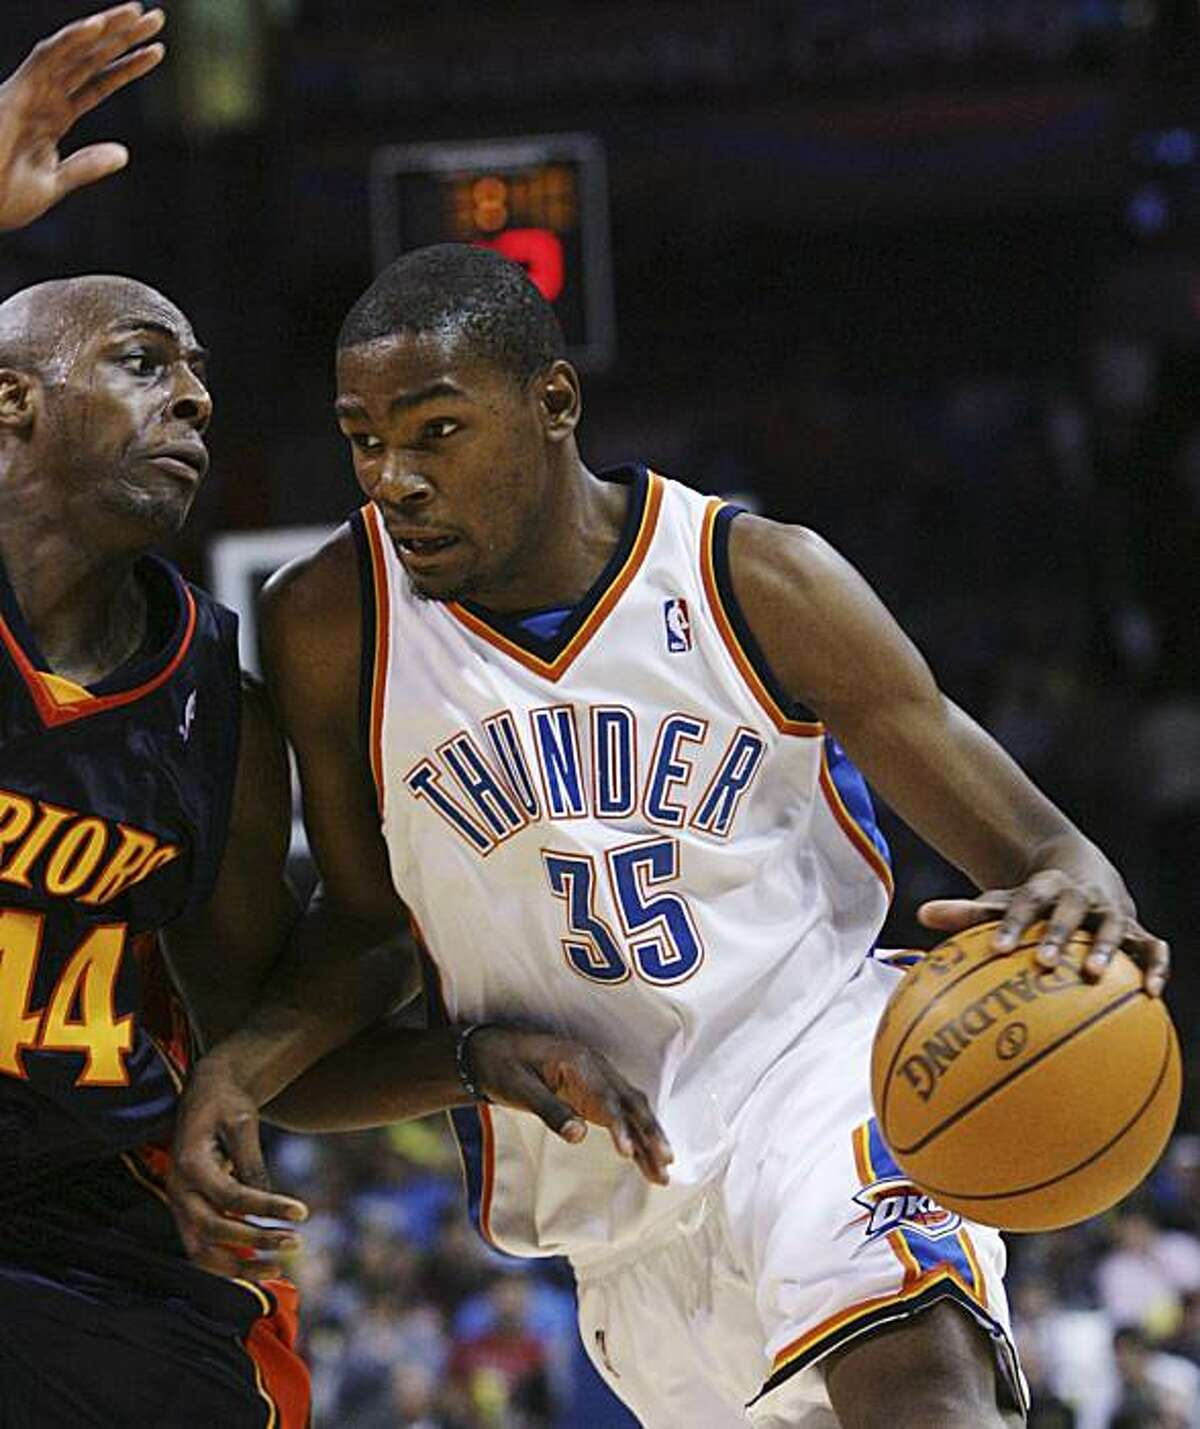 Oklahoma City Thunder forward Kevin Durant, right, drives around Golden State forward Anthony Tolliver, left, in the fourth quarter of an NBA basketball game in Oklahoma City, Sunday, Jan. 31, 2010. Oklahoma City won 112-104.